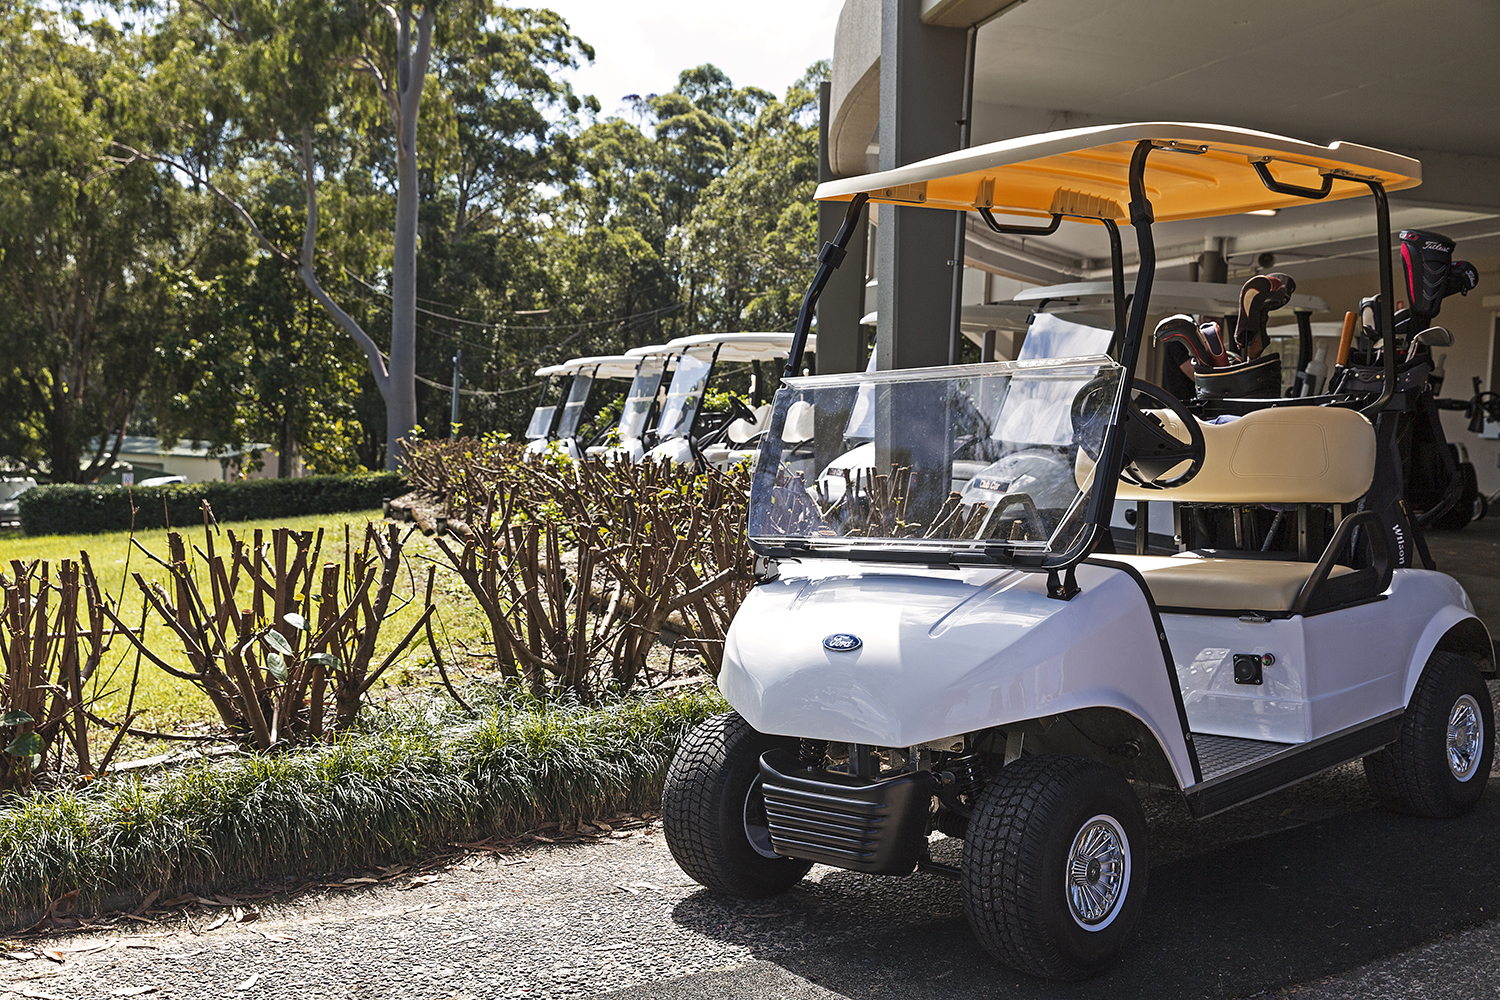 golf-cart-group-course-01